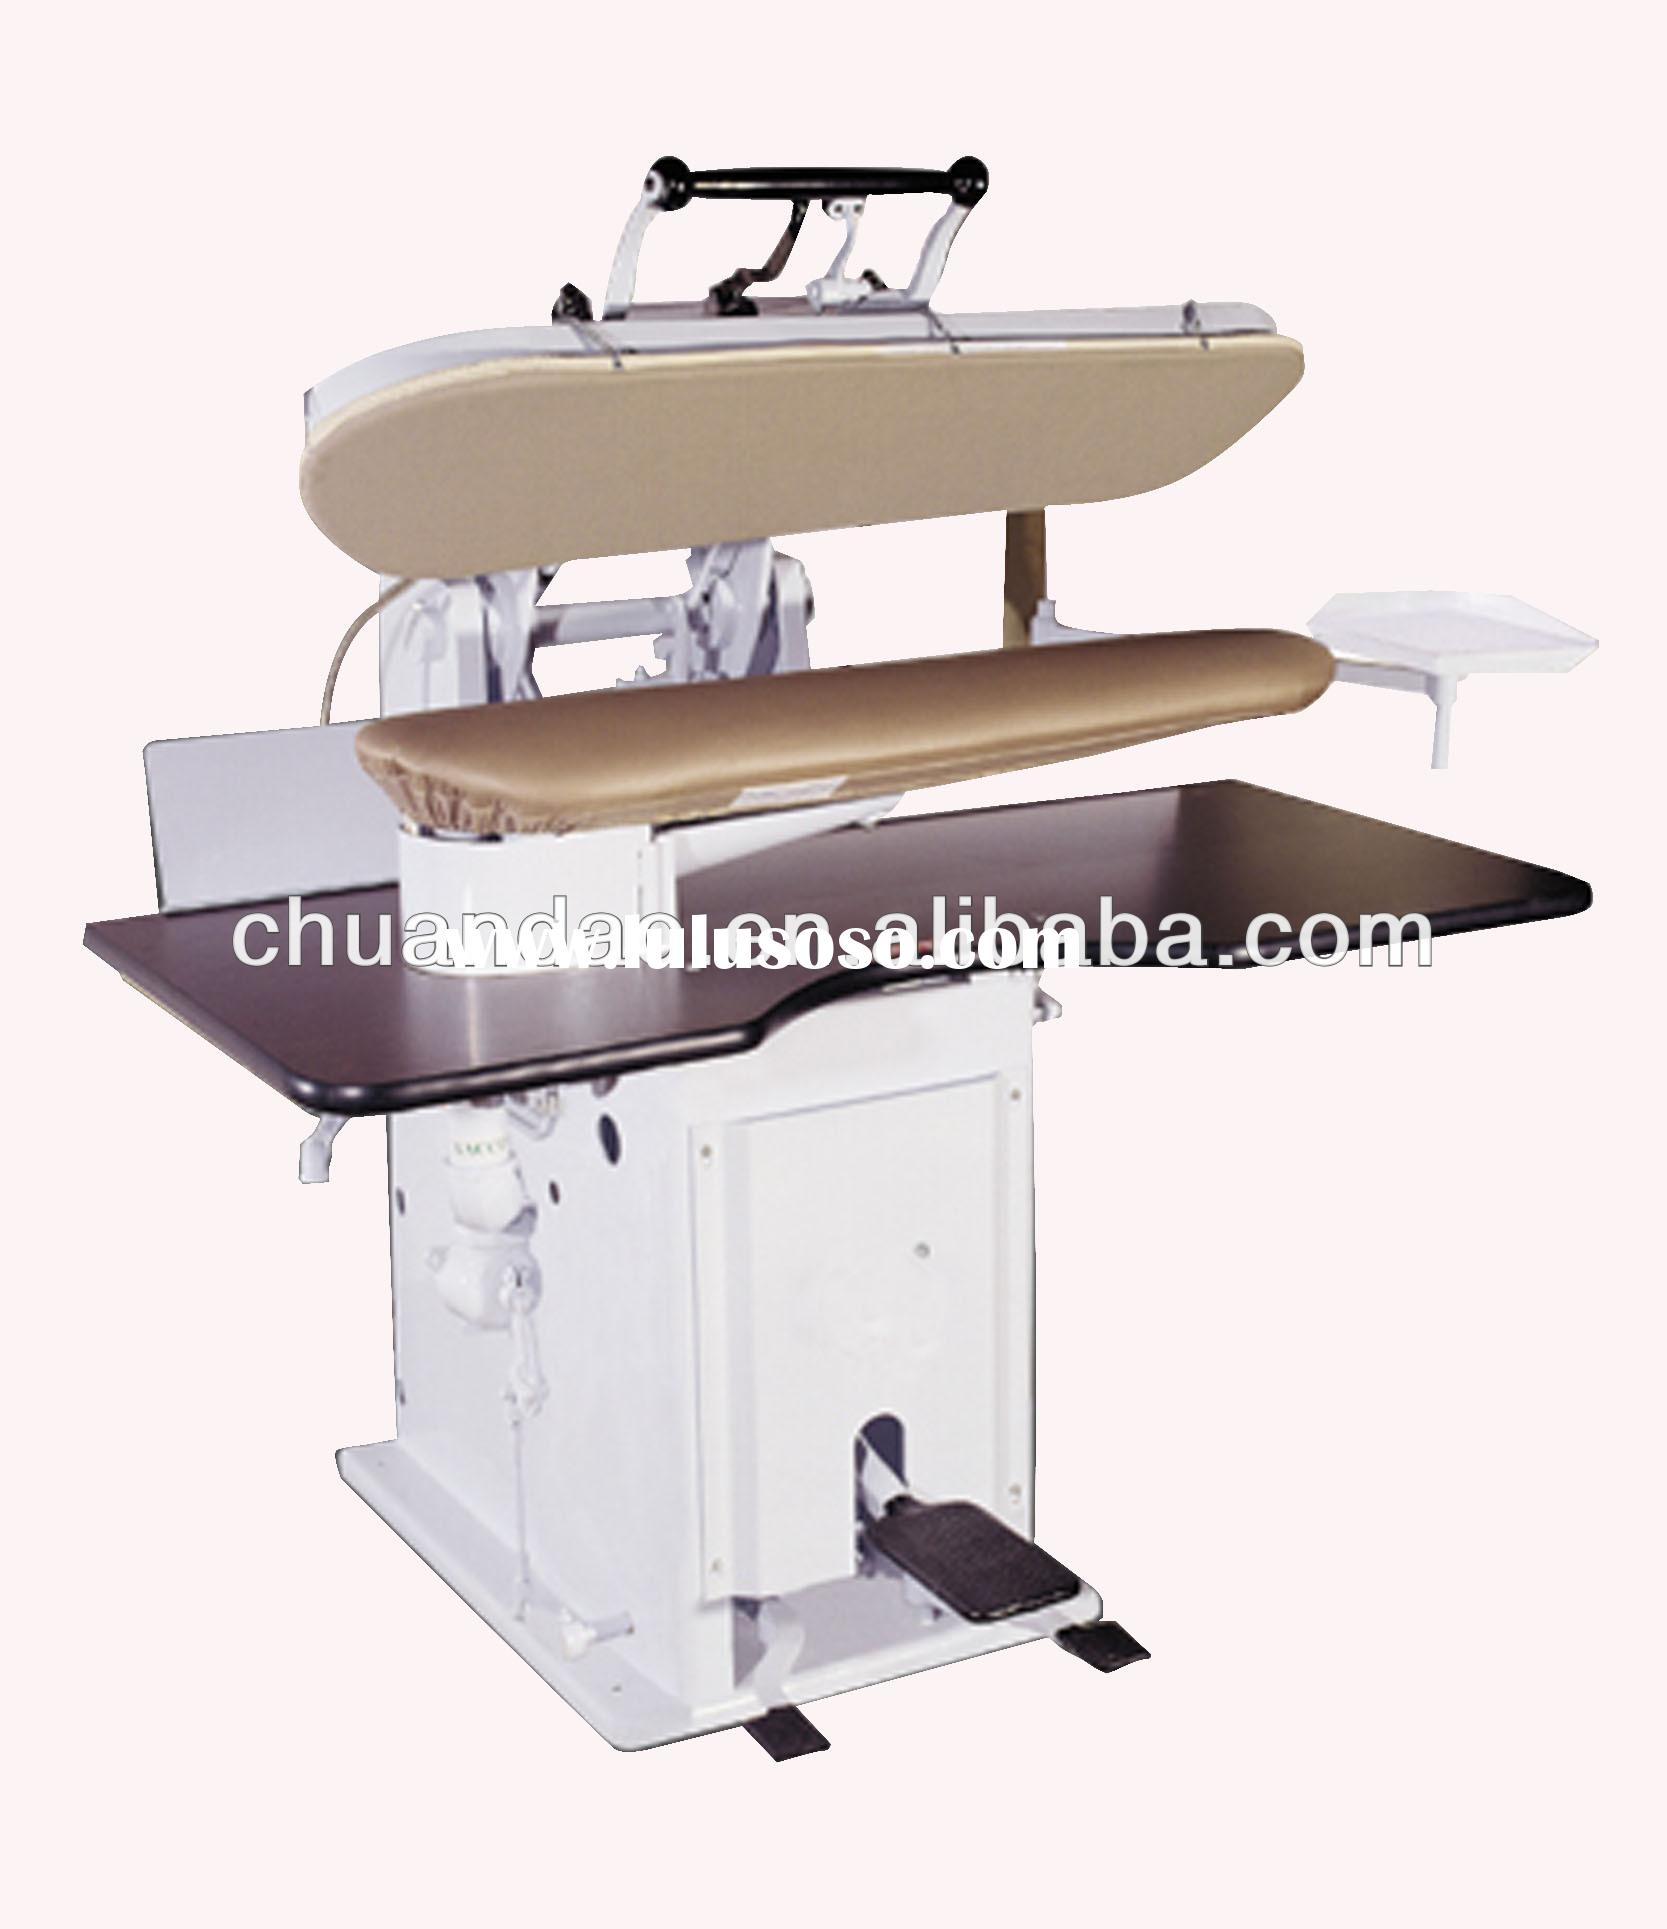 Laundry dry cleaning pressing machine